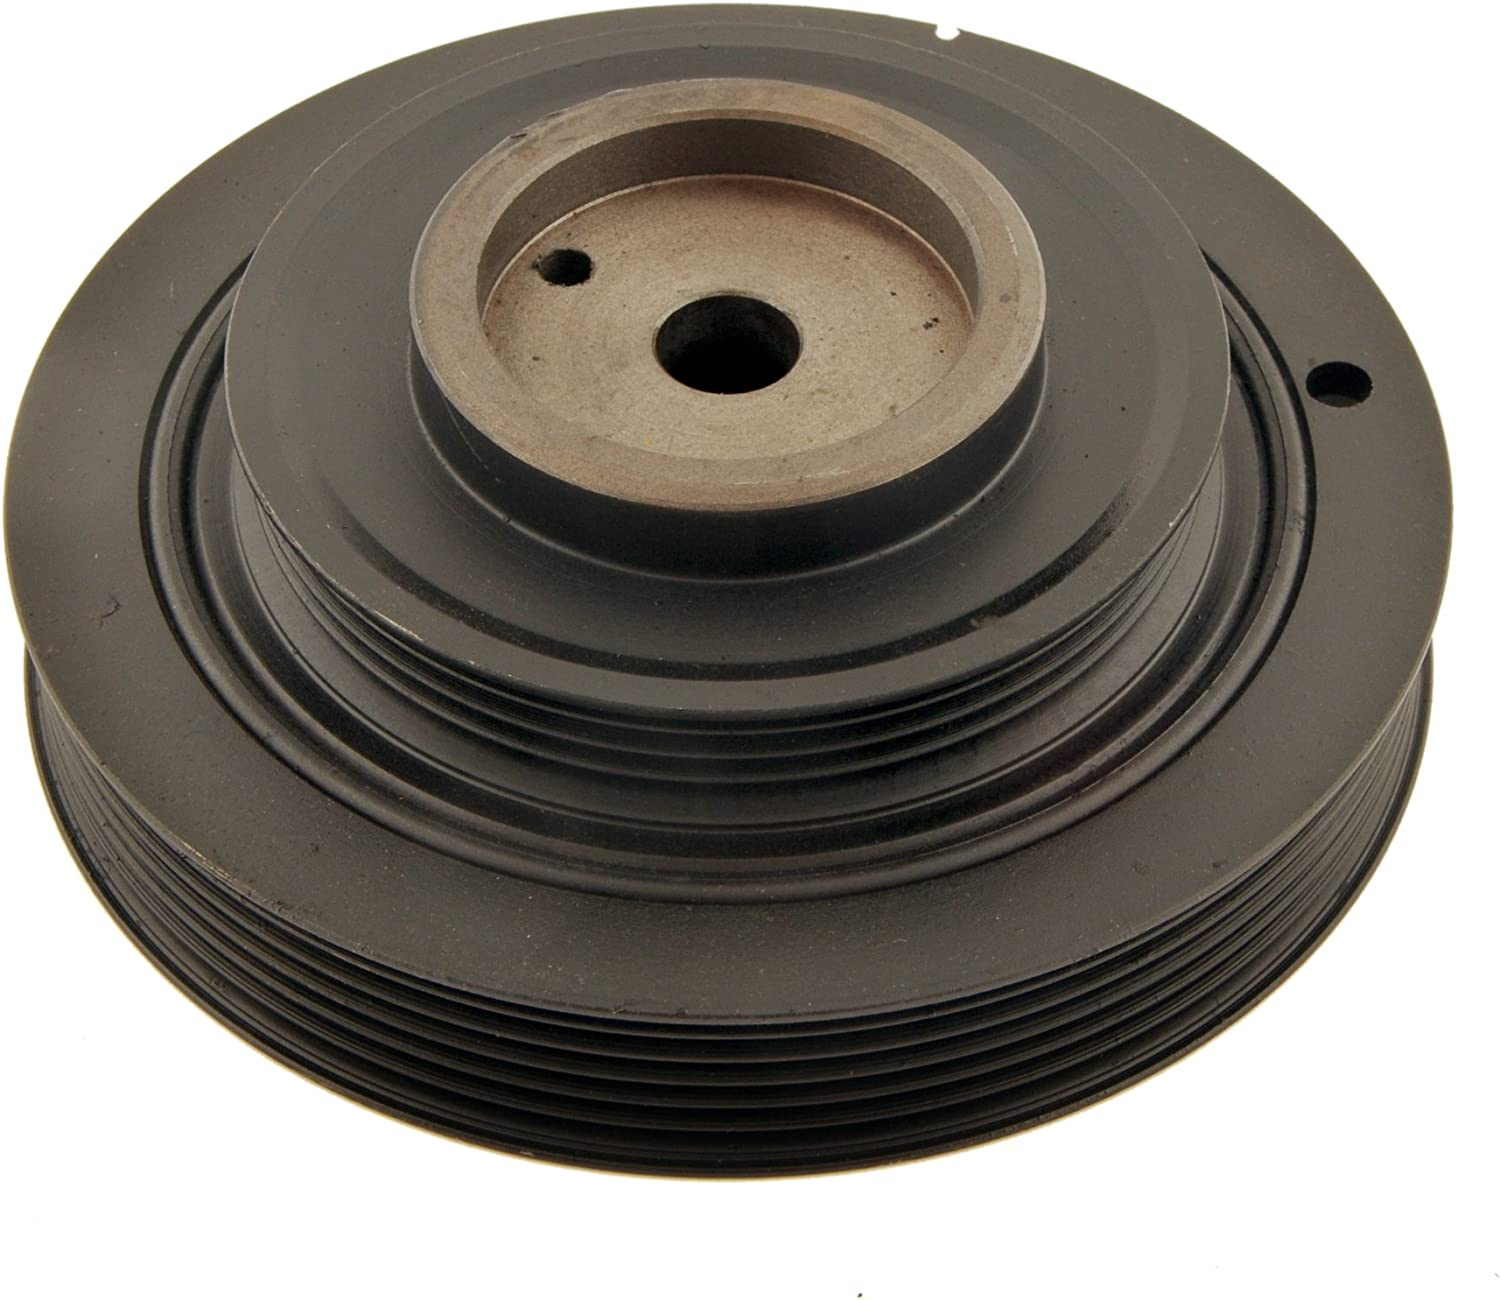 MO-4667772 Crankshaft Pulley//Harmonic Balancer MO-4667772 MTC 9237 MTC 9237